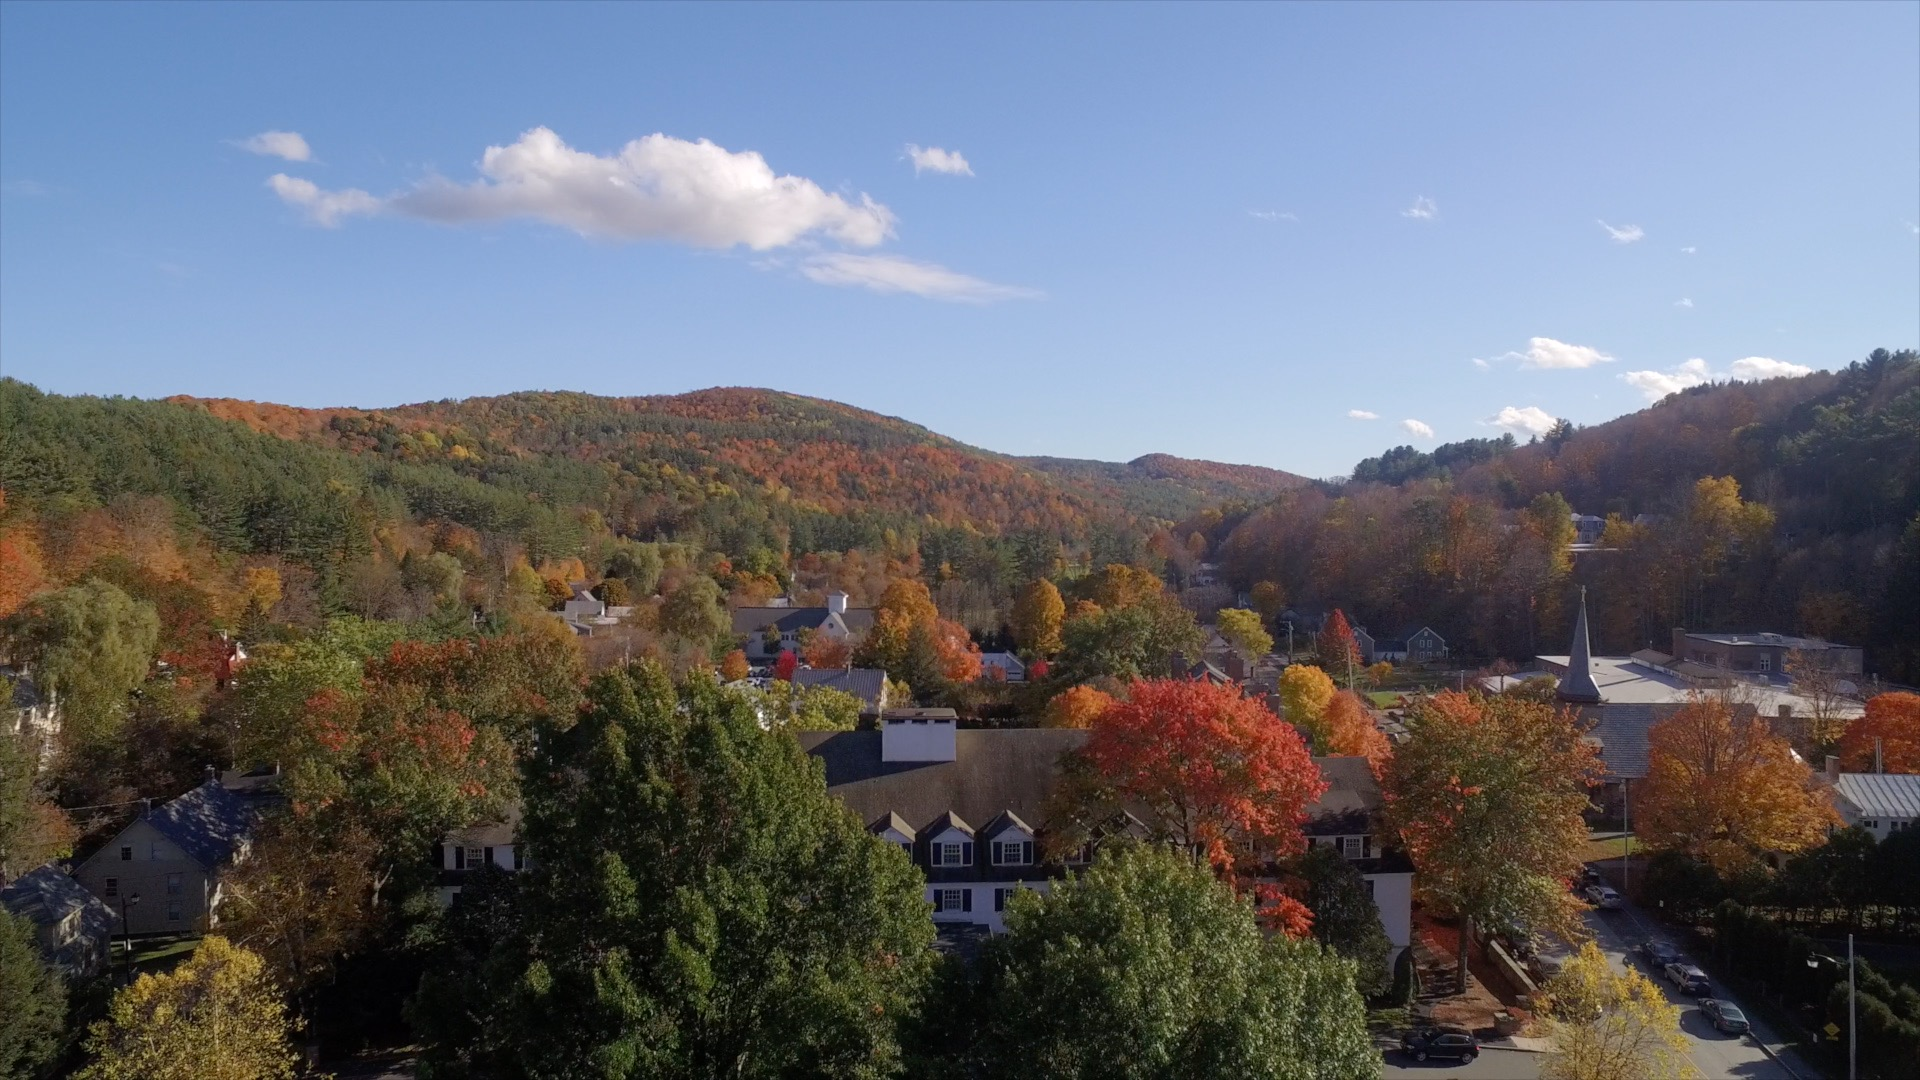 Woodstock Inn in the Fall